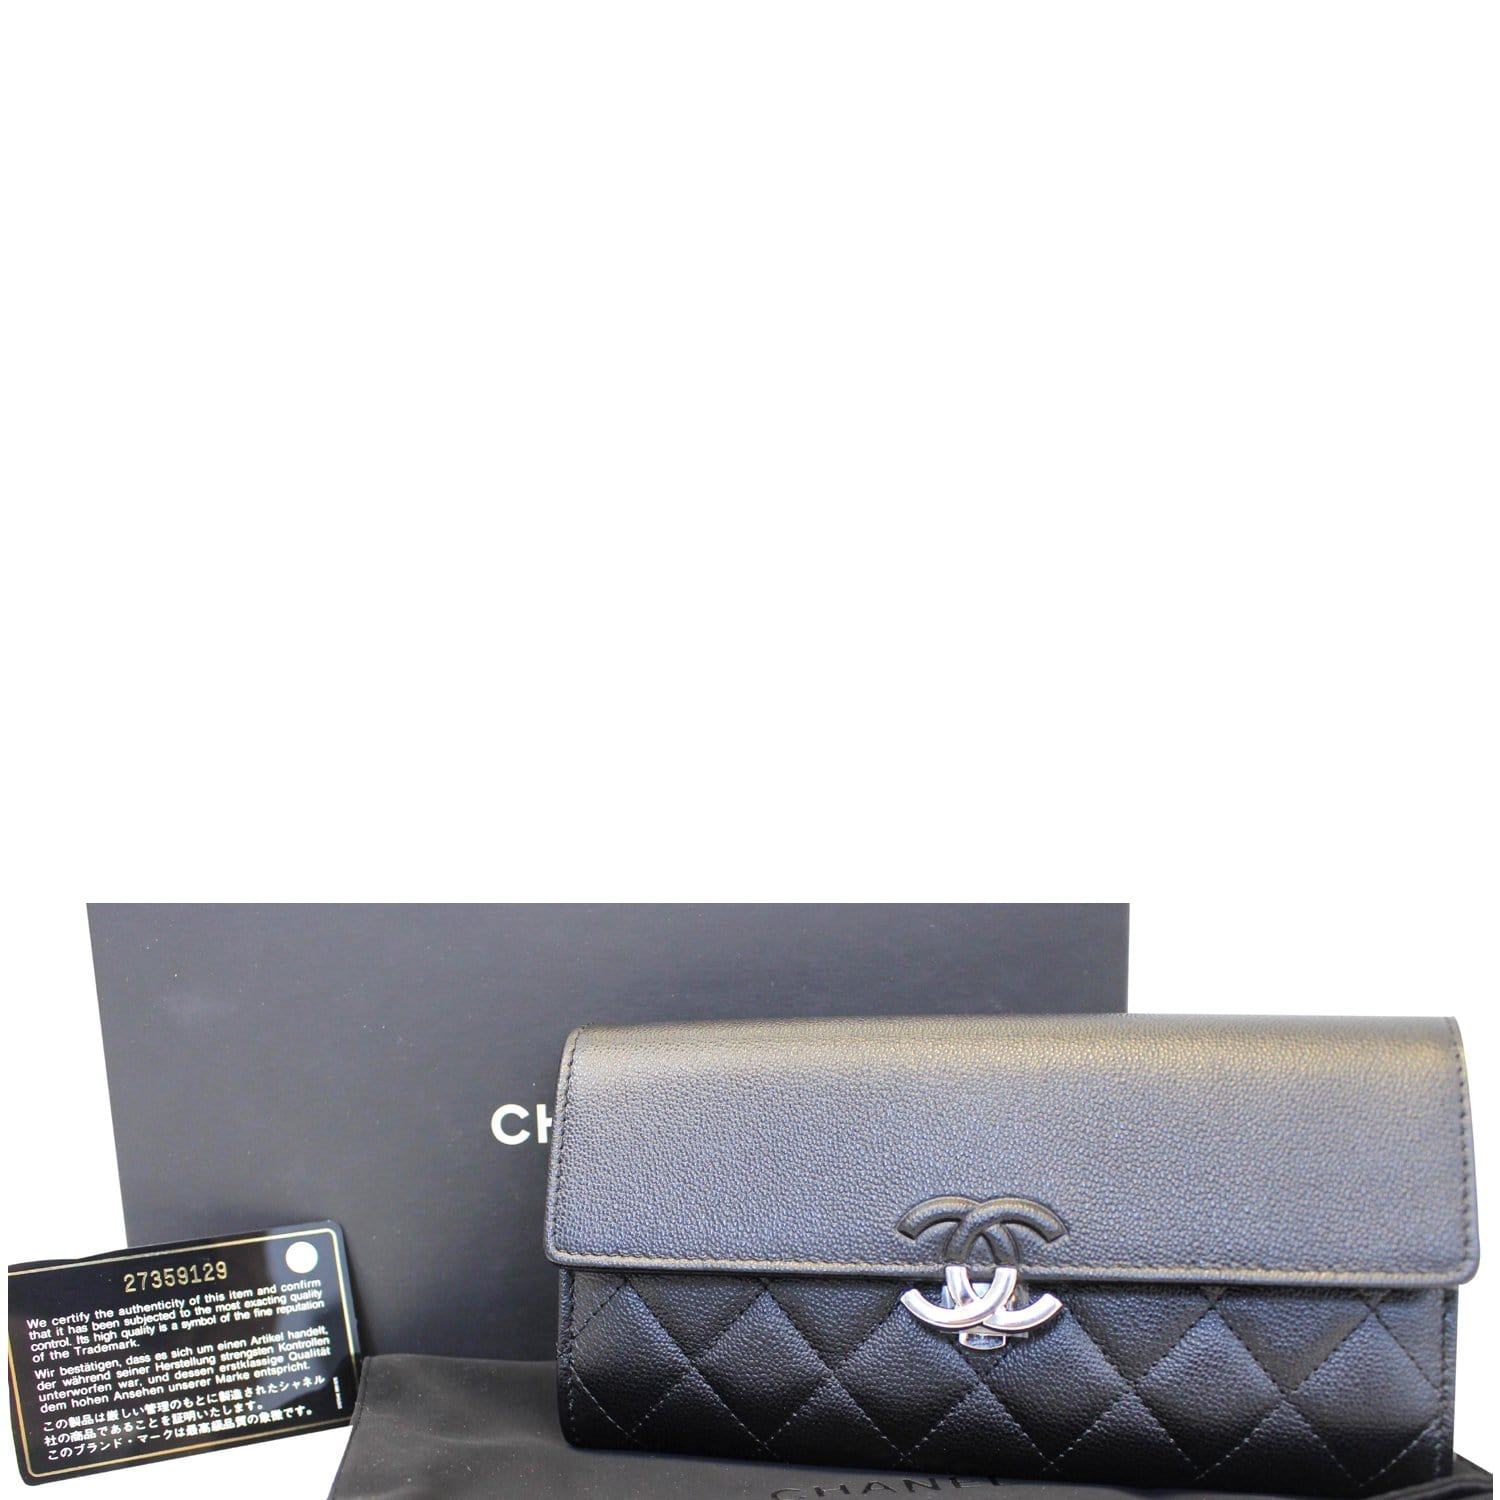 bd197e2fc7bfe8 CHANEL Grained Leather Long Flap Wallet Silver-Tone Metal-US